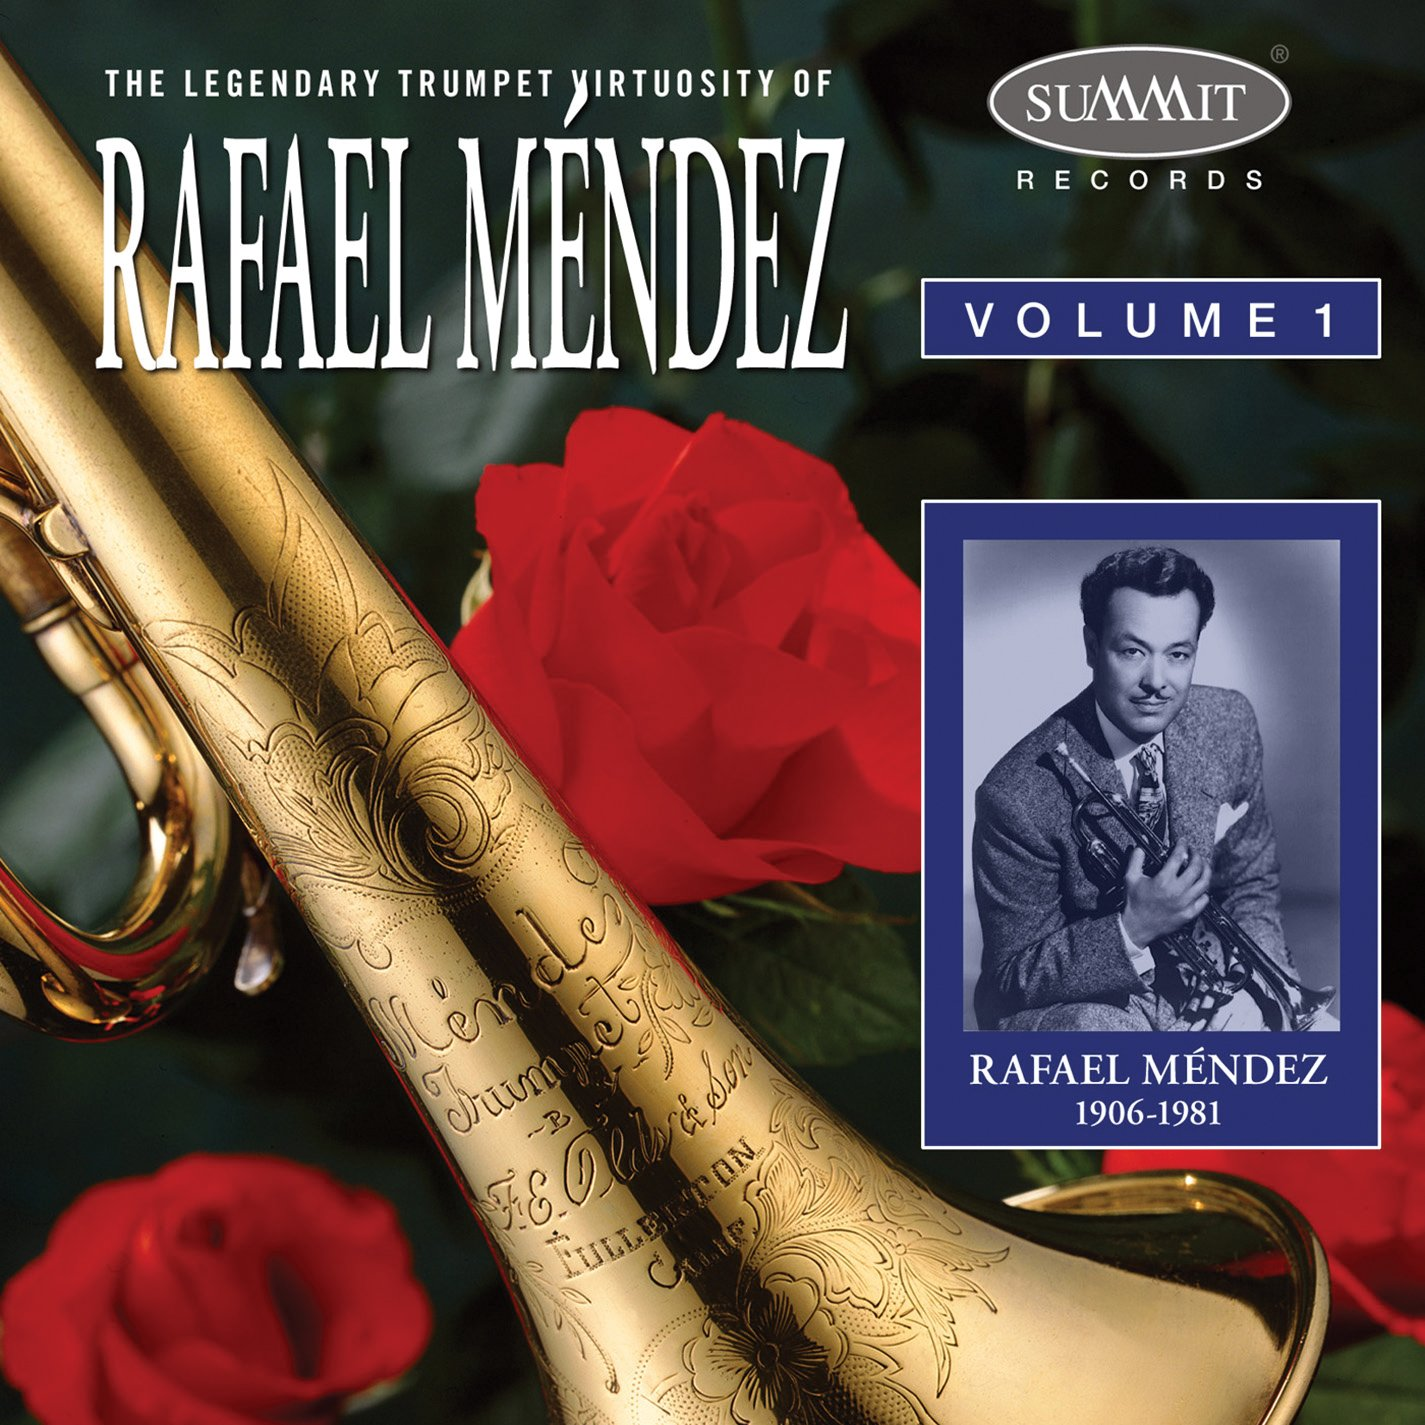 Legendary Trumpet Virtuosity of Rafael Mendez, Vol. 1